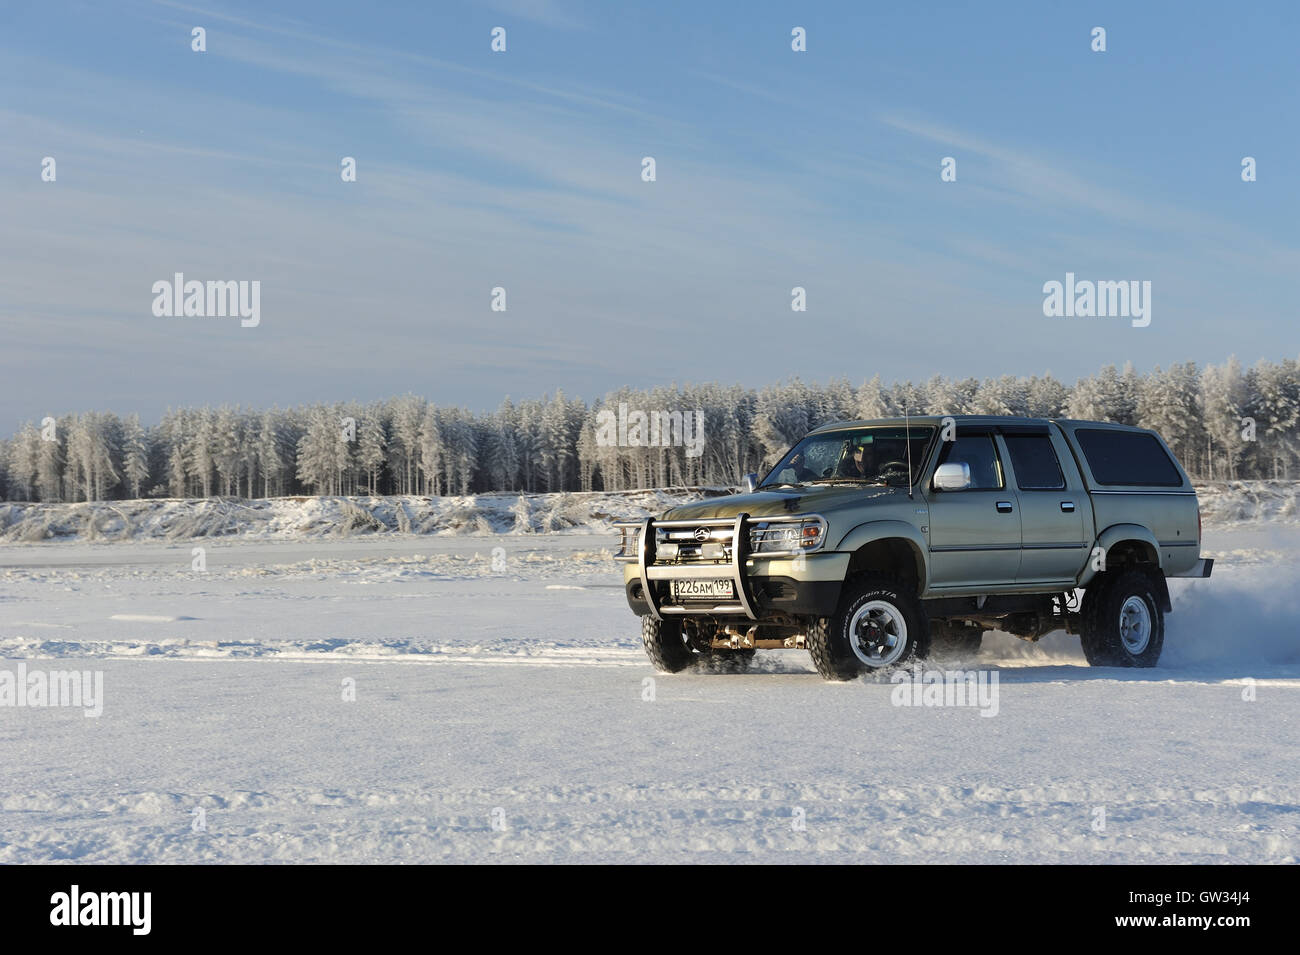 Great wall deer pickup driving on snowy river beach stock for Great wall motors stock